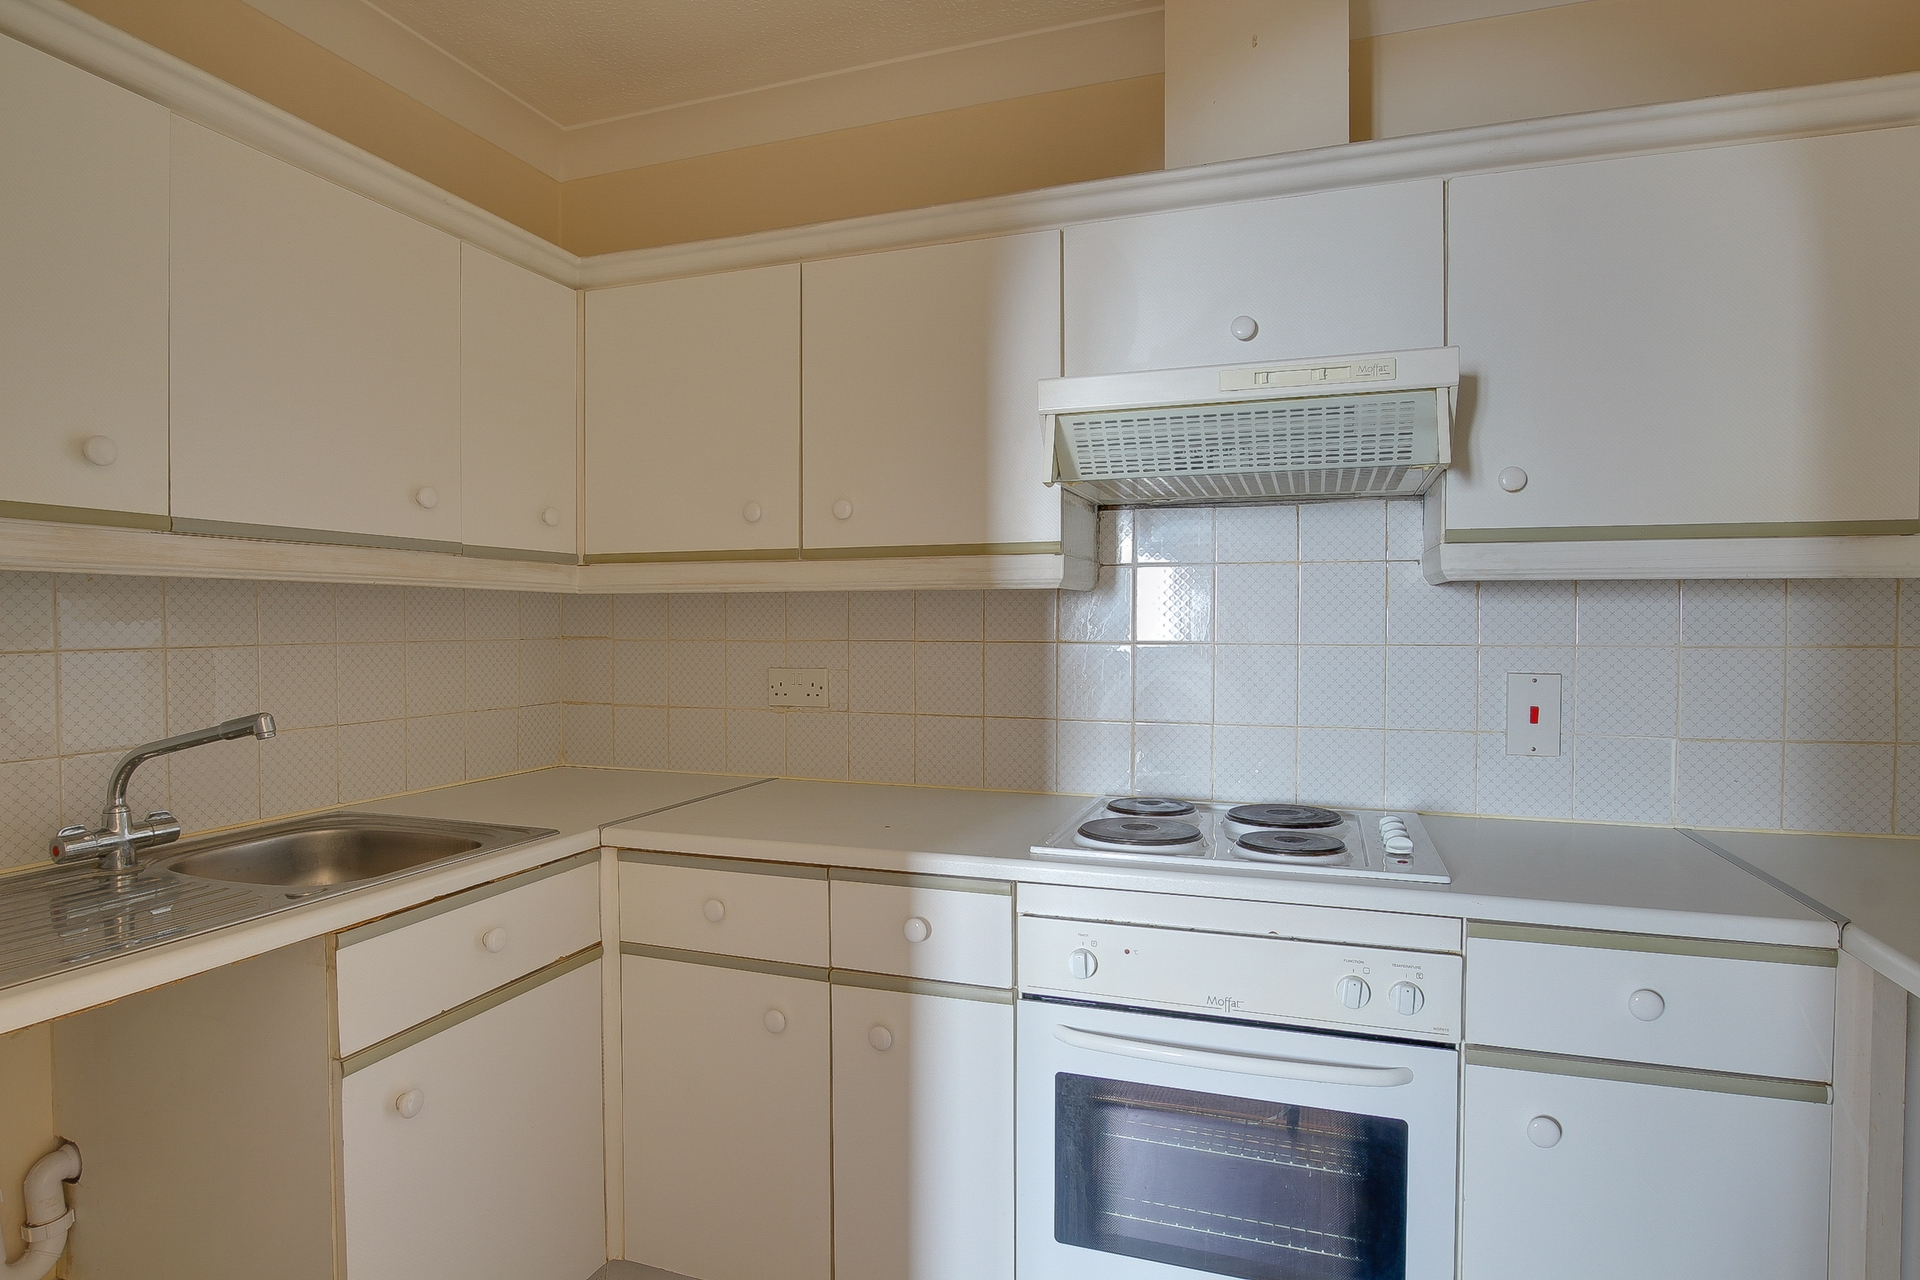 2 bed flat to rent in Victoria Road, Ramsgate, CT11  - Property Image 3